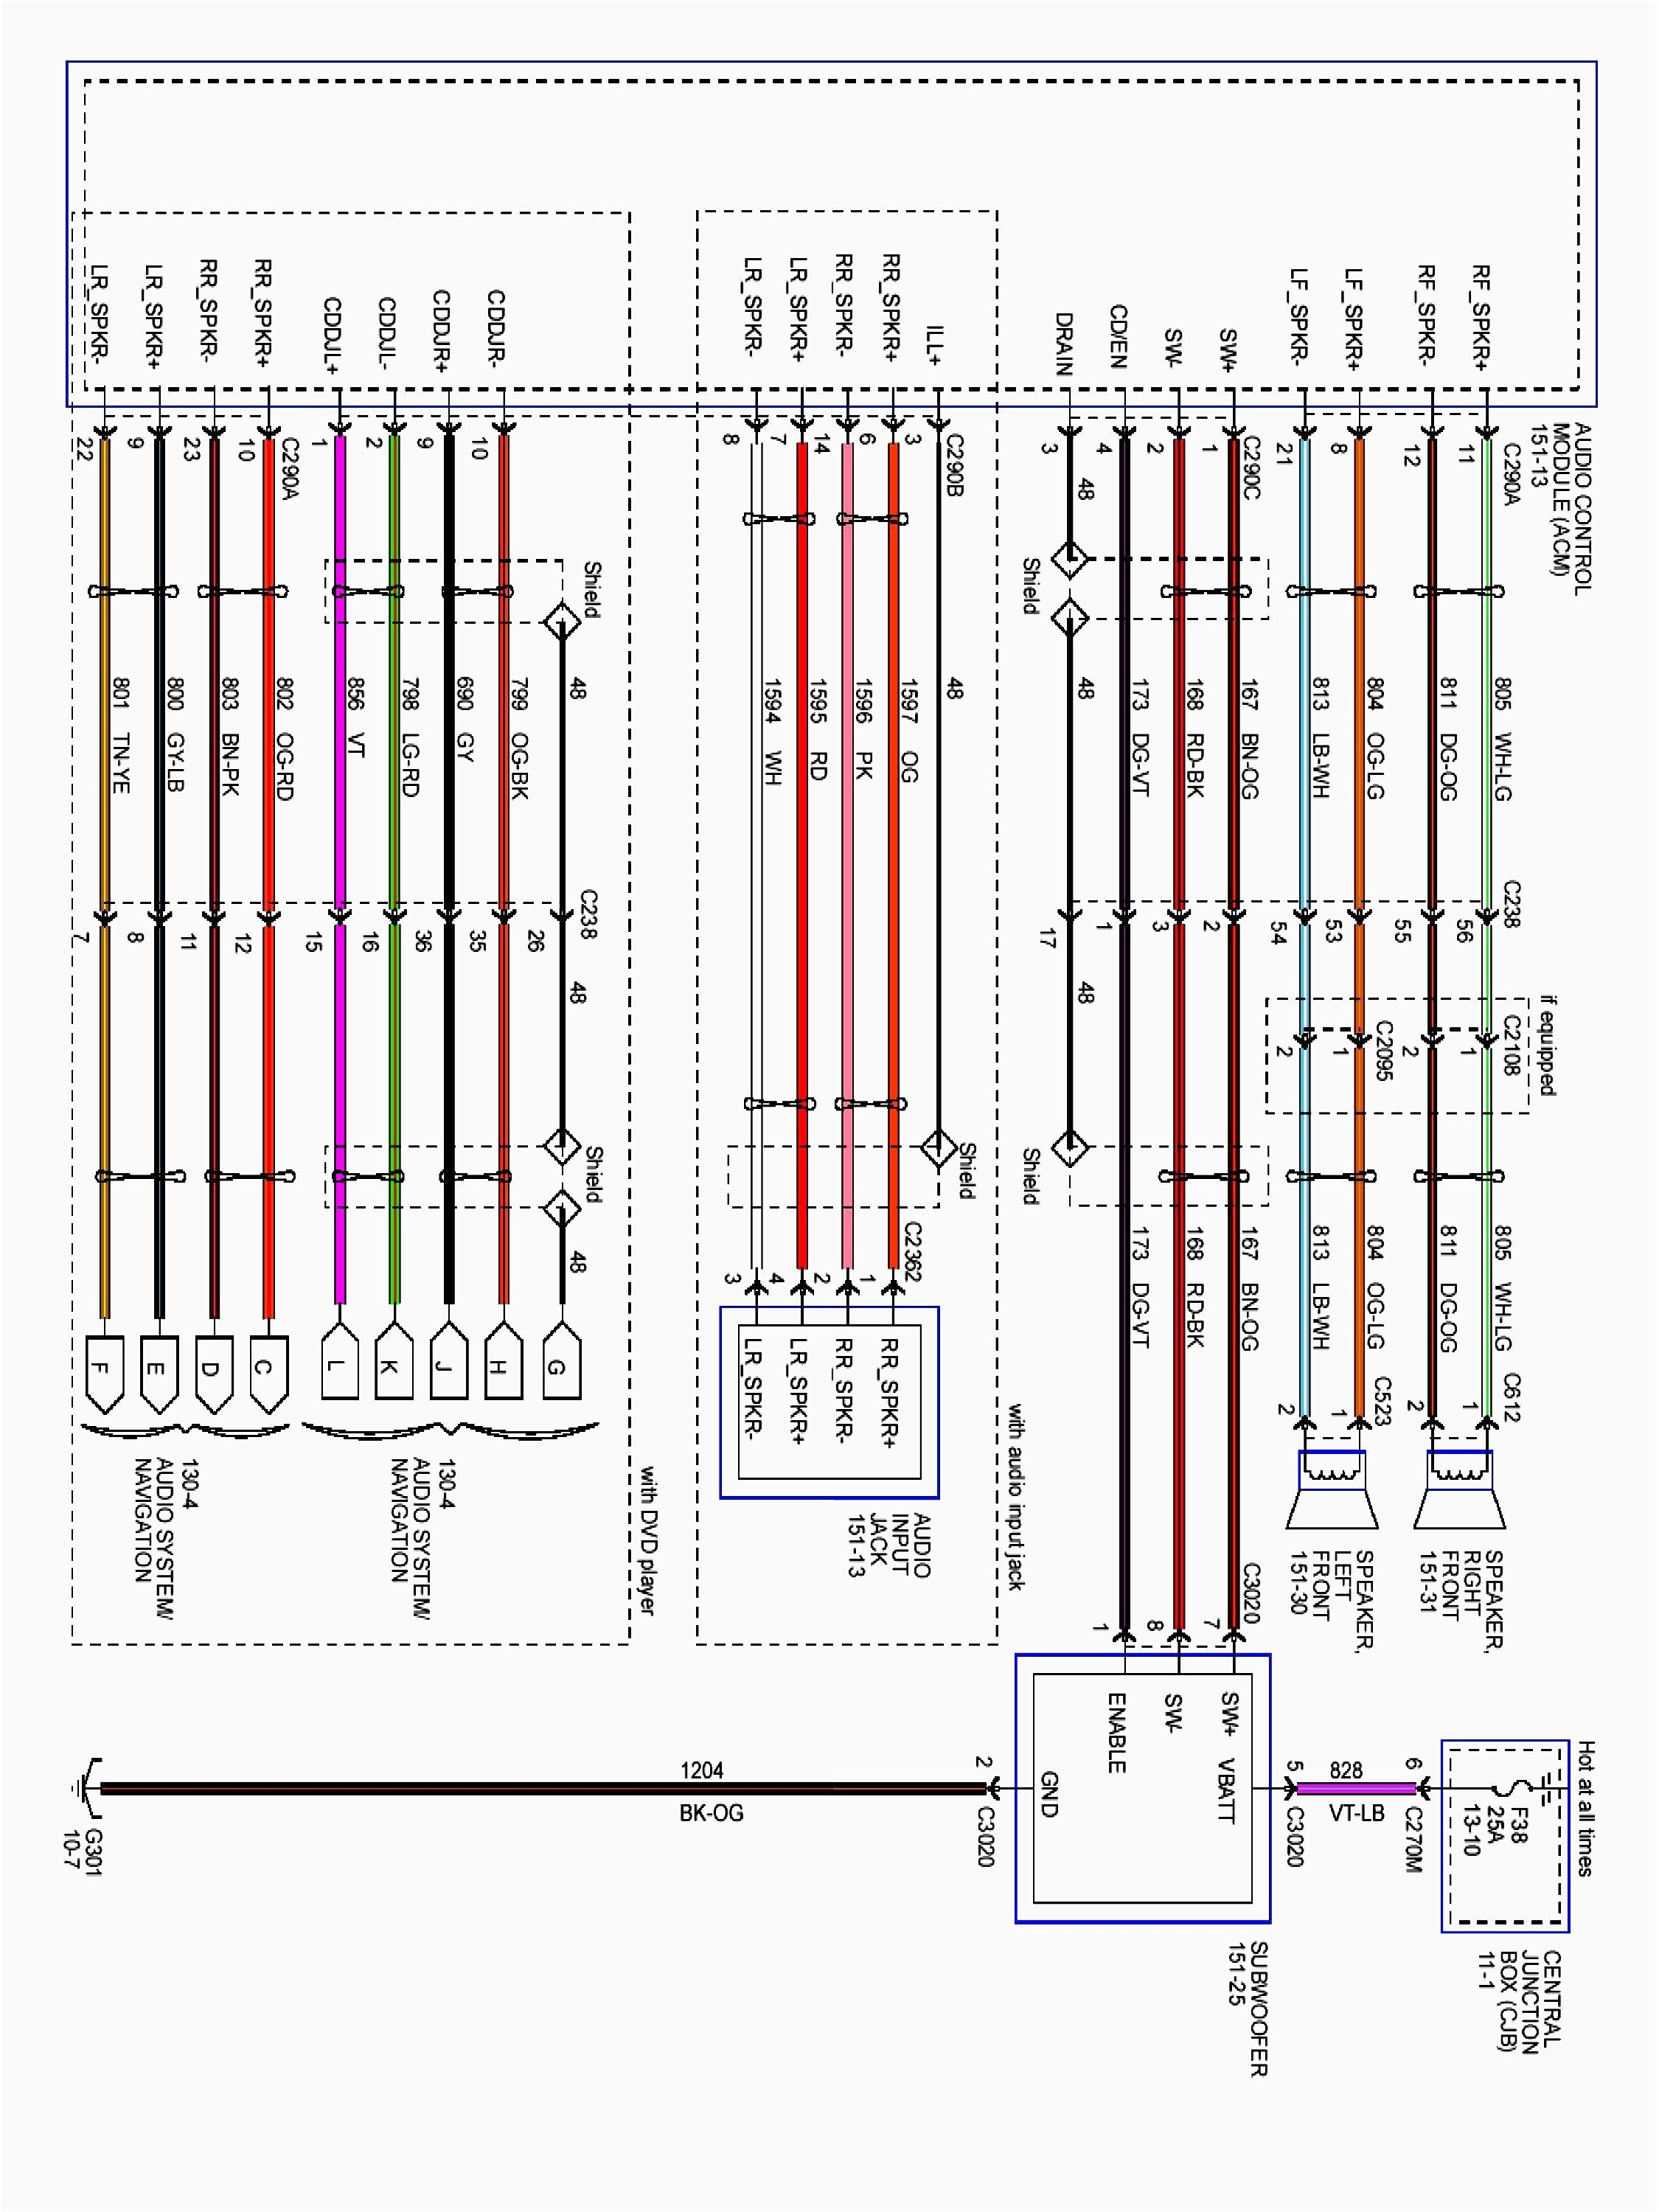 2004 ford Expedition Engine Diagram 2004 ford F 150 Wiring Schematic Cmcv Reveolution Wiring Diagram • Of 2004 ford Expedition Engine Diagram ford Explorer Parts Diagram — Daytonva150